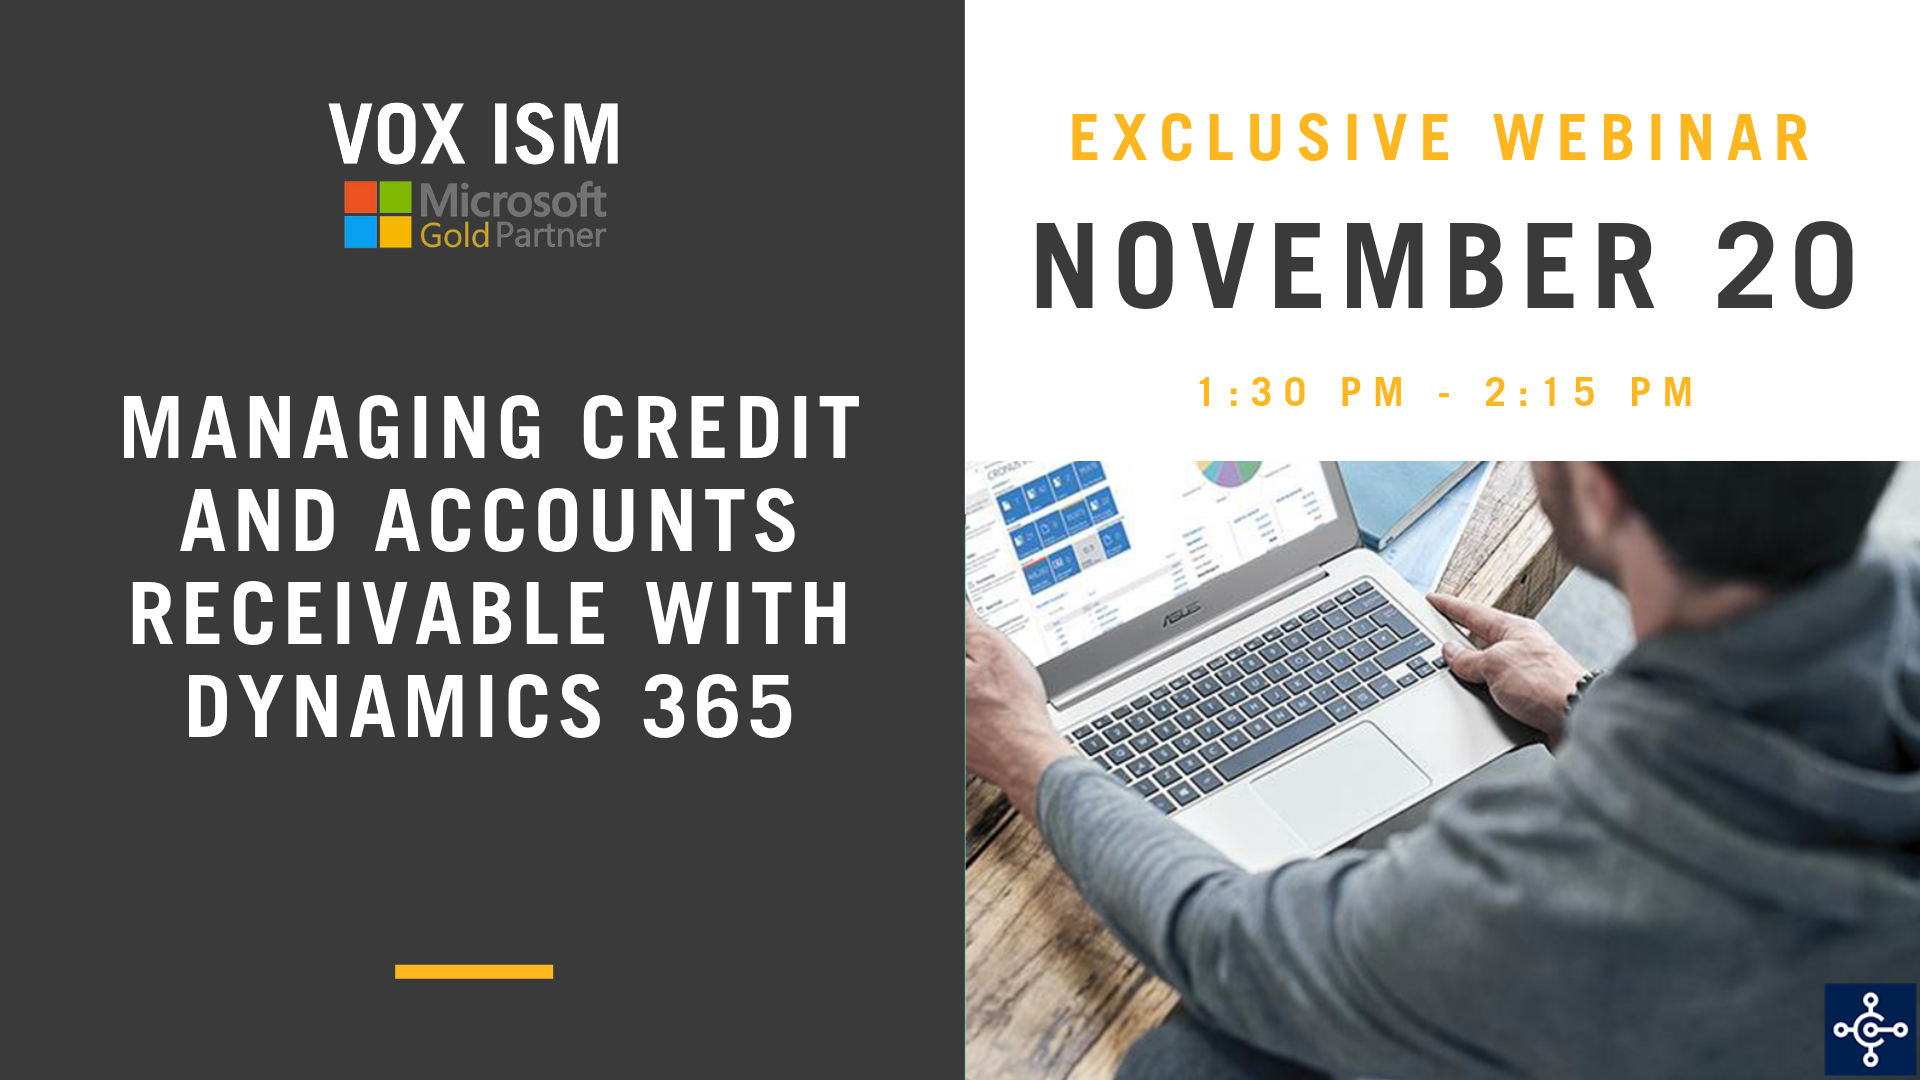 Managing Credit and Accounts Receivable with Dynamics 365 - November 20 - Webinar - VOX ISM